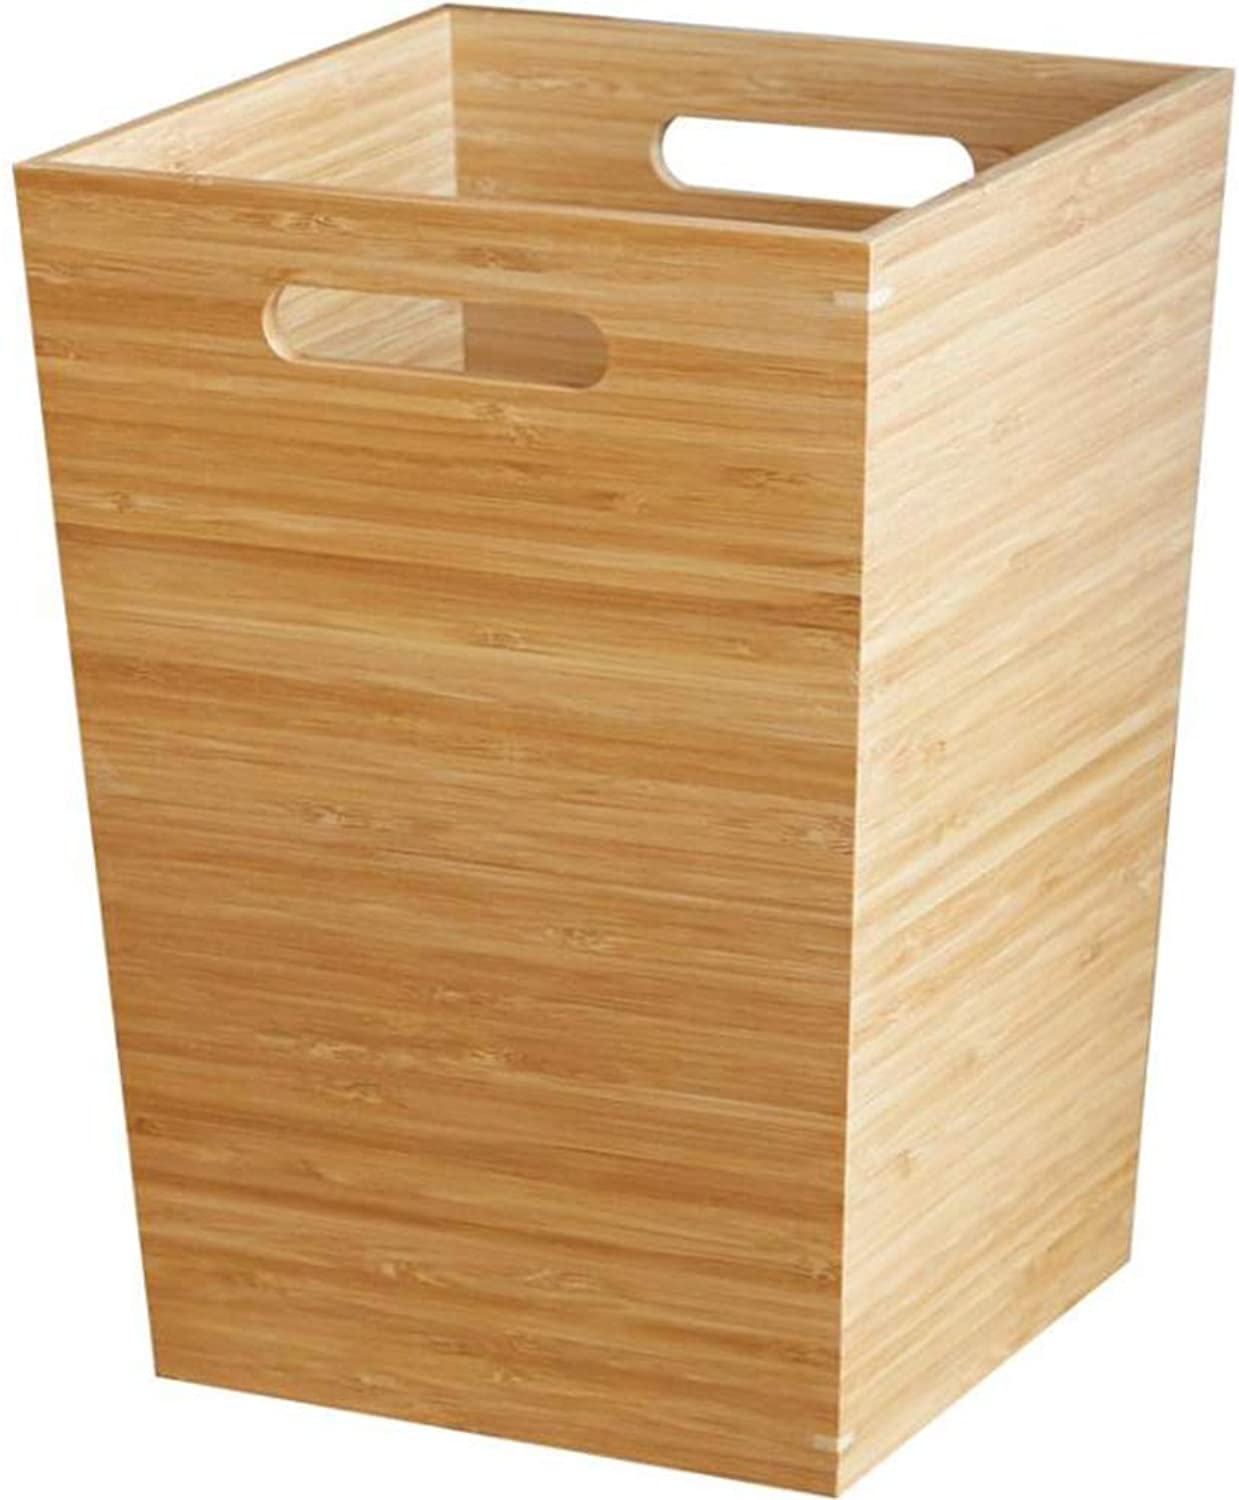 Wooden uncovered Trash can Living Room Bedroom Bamboo Wood Waste Paper Storage bin 17  17  27.5CM